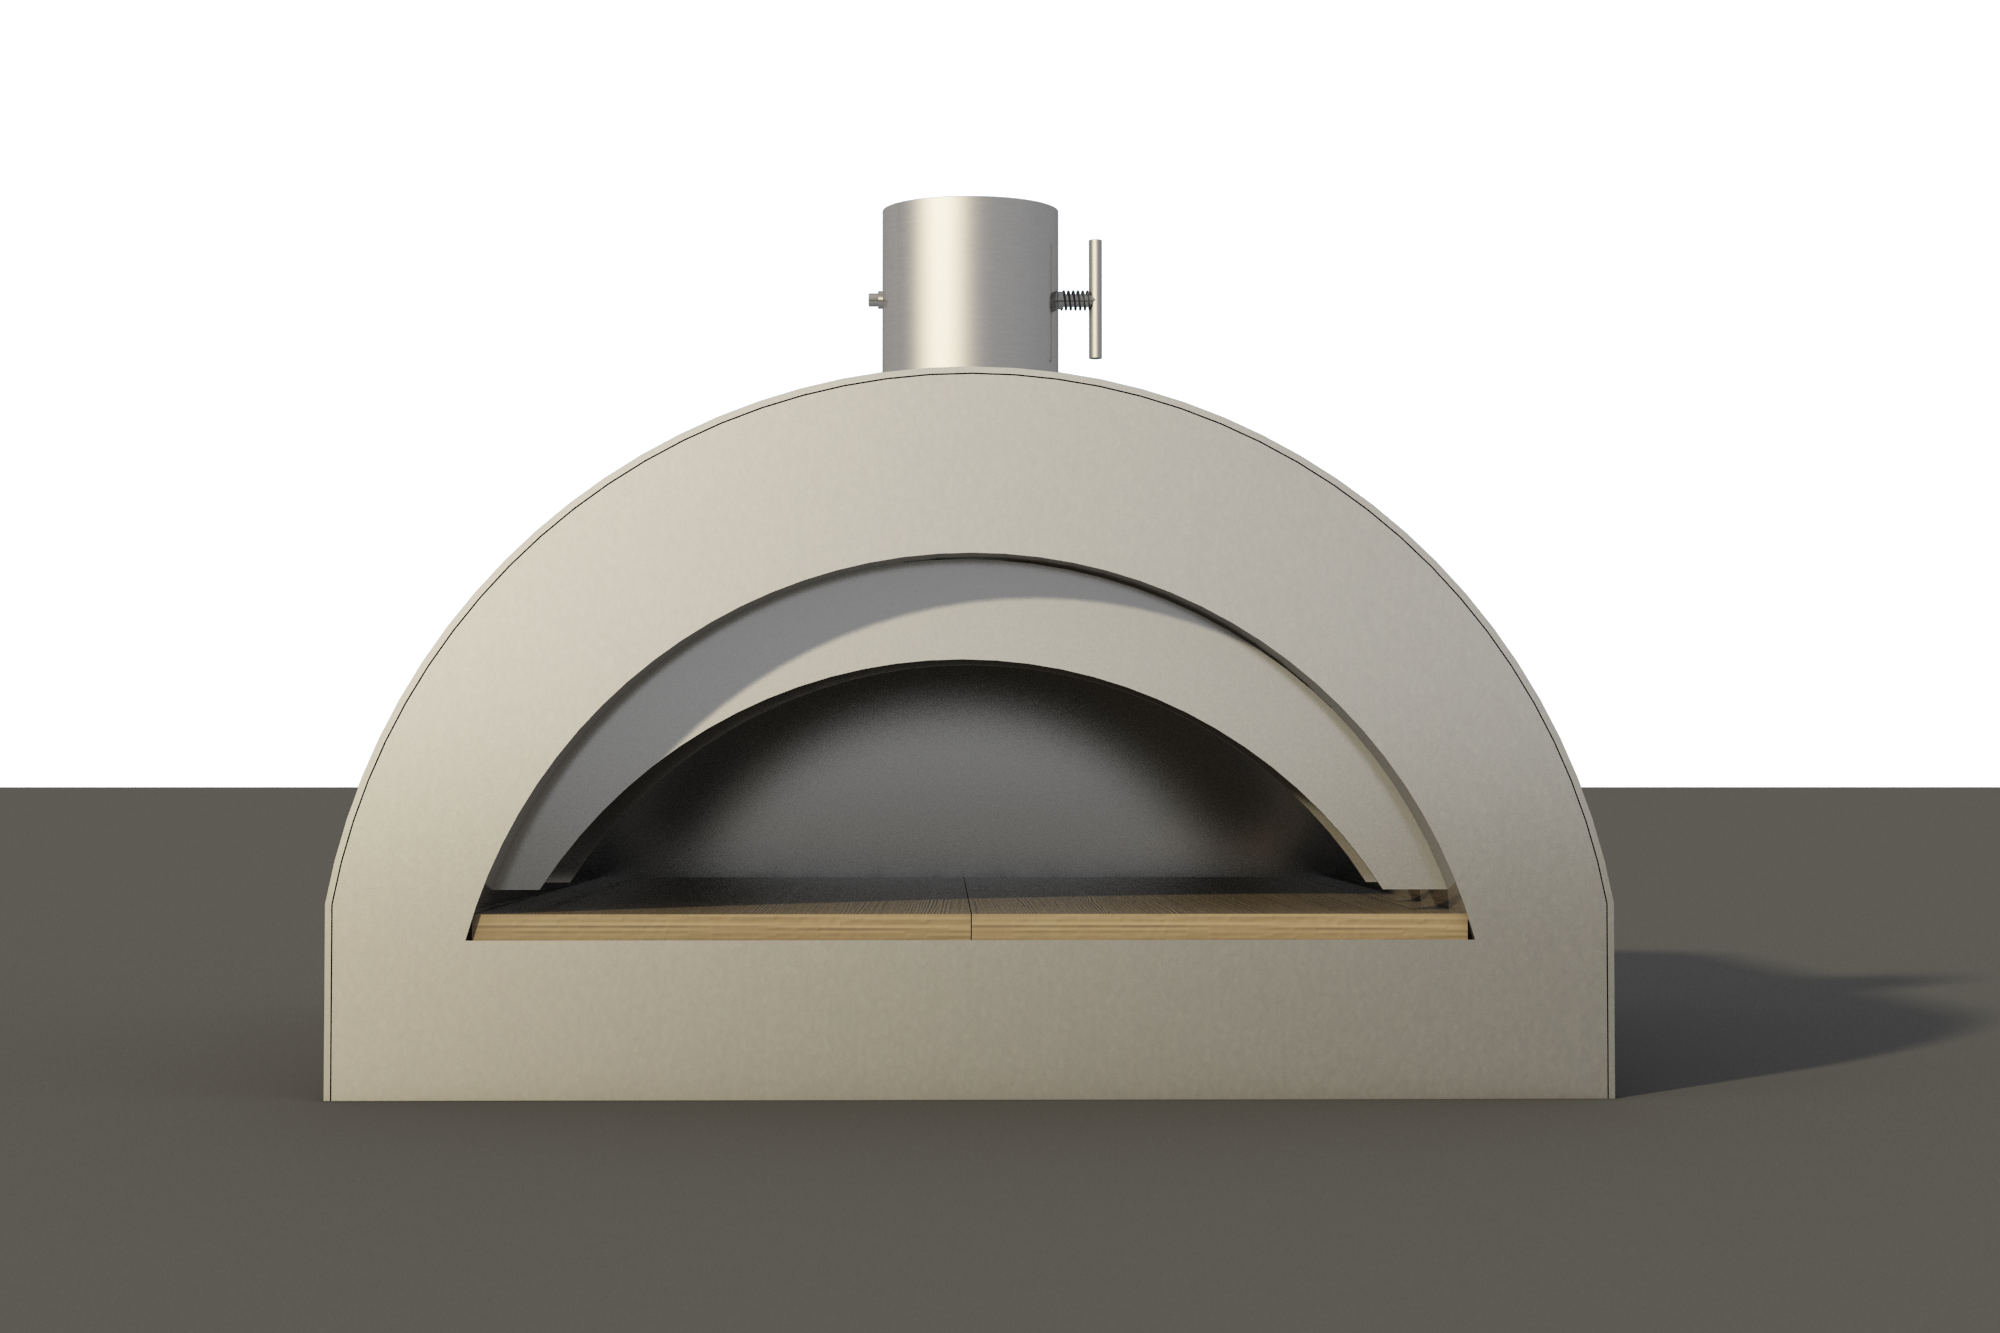 build your own pizza oven diy plans fun to build save money